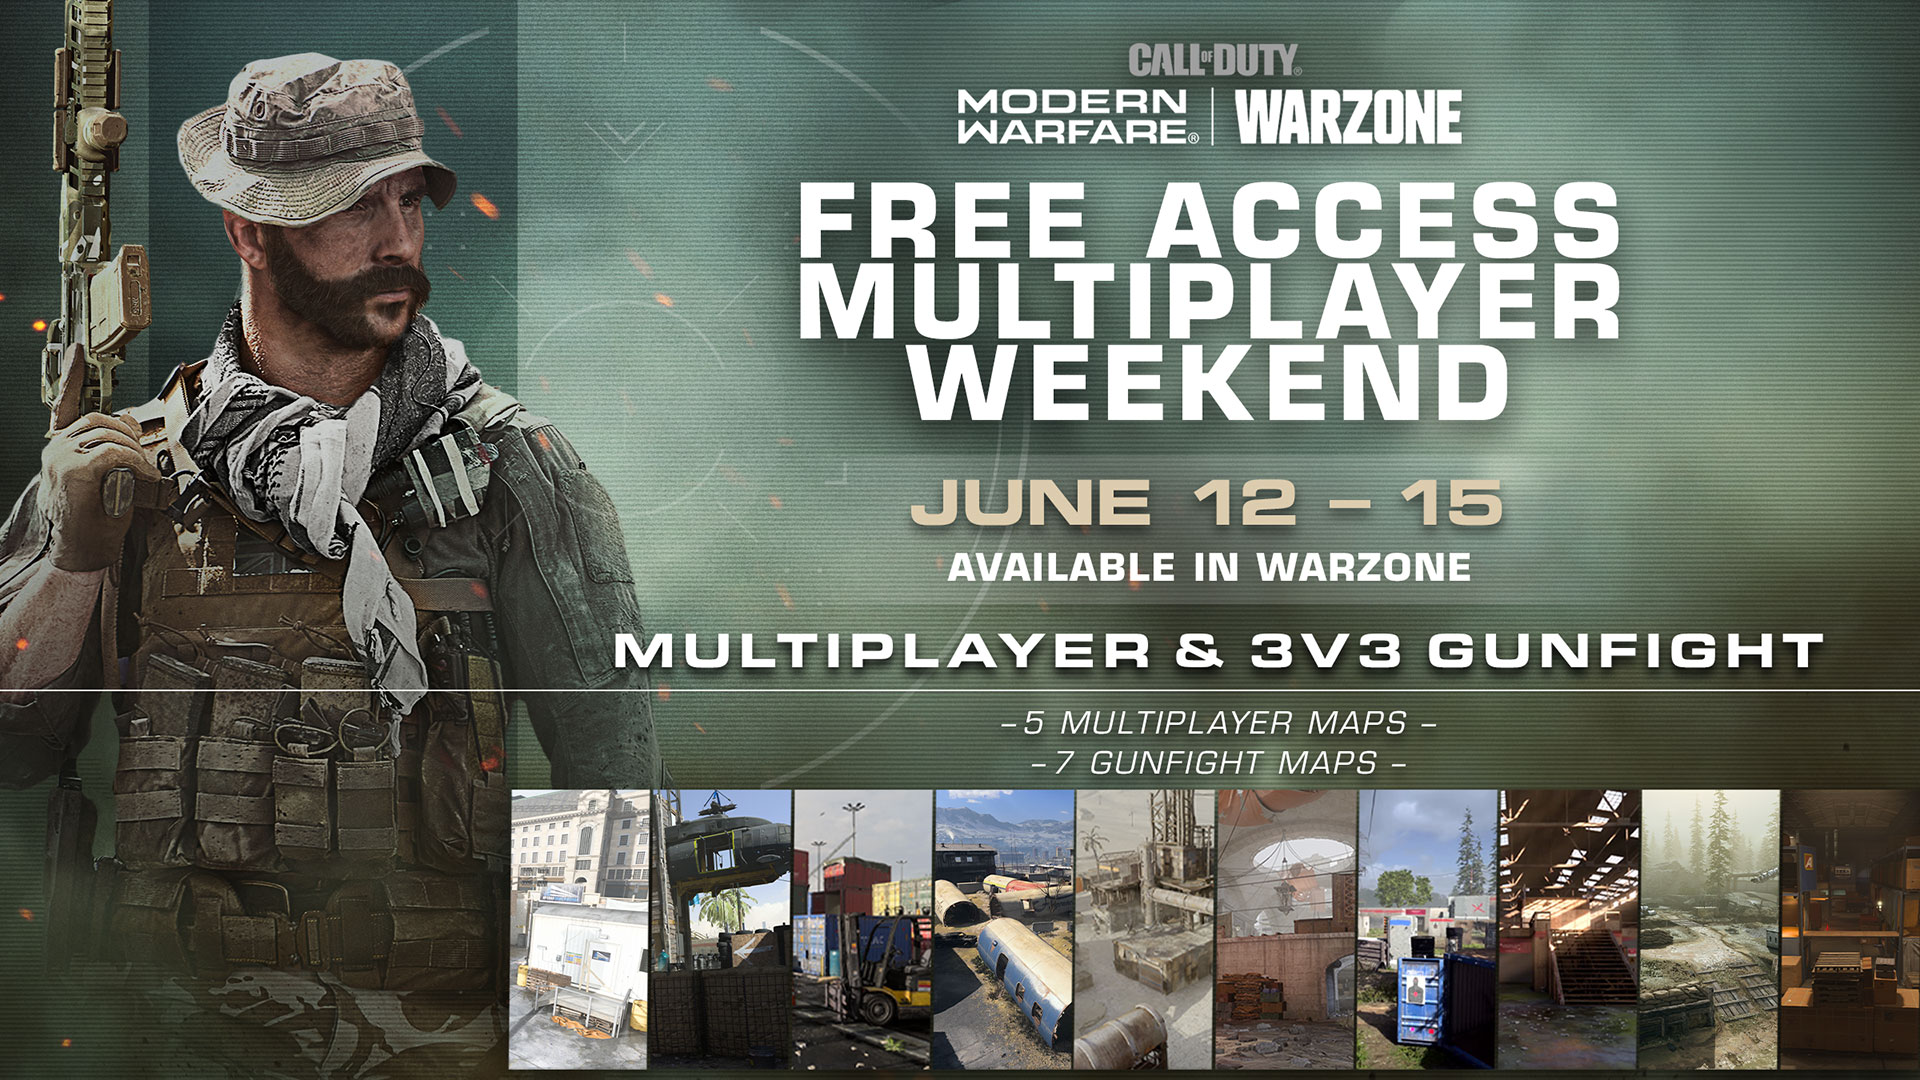 Check Out Modern Warfare Multiplayer and Gunfight during the Multiplayer Free Access Weekend